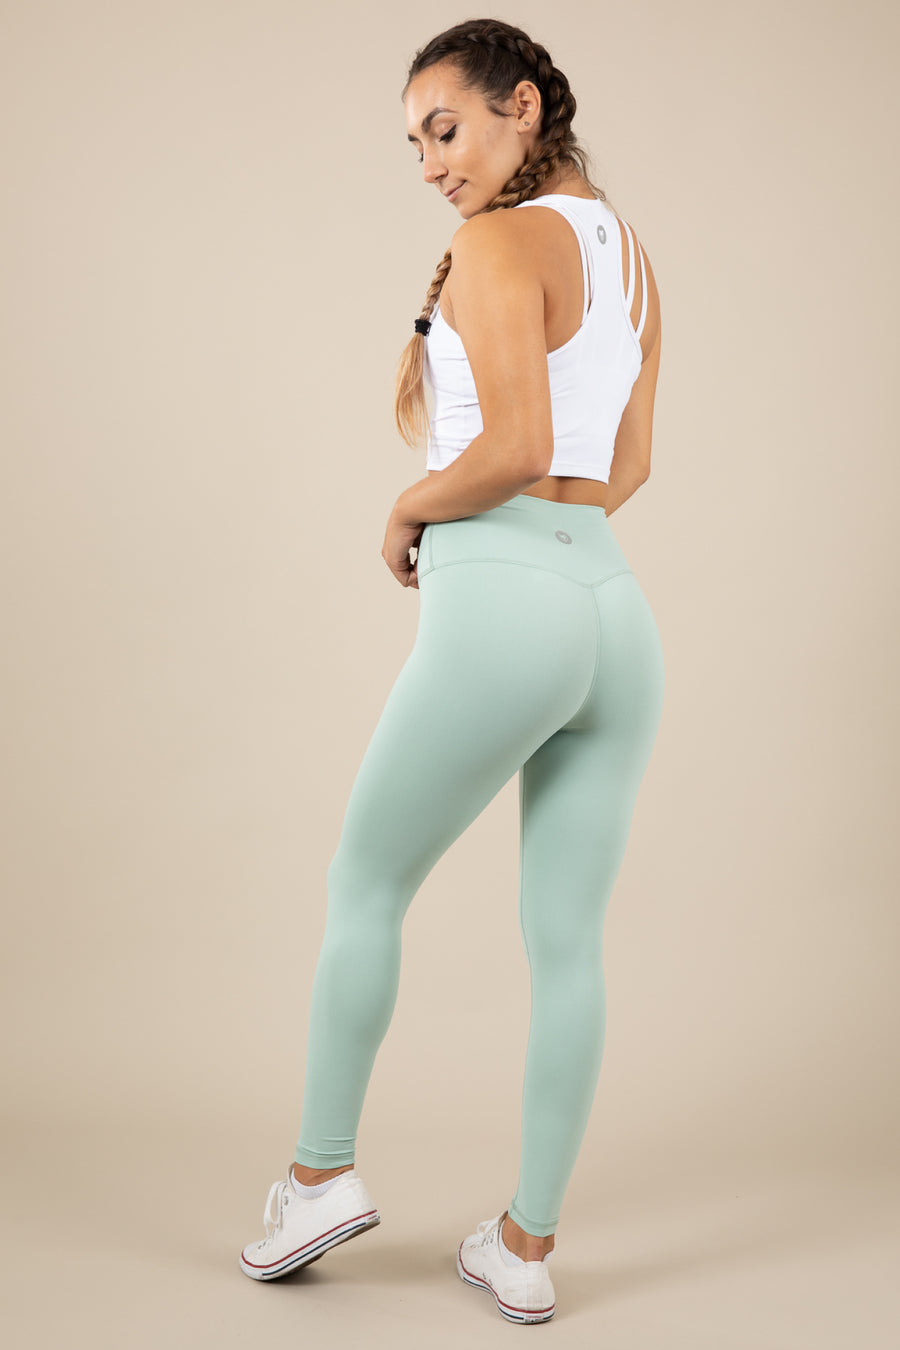 Sensation Leggings - Luxe Mint